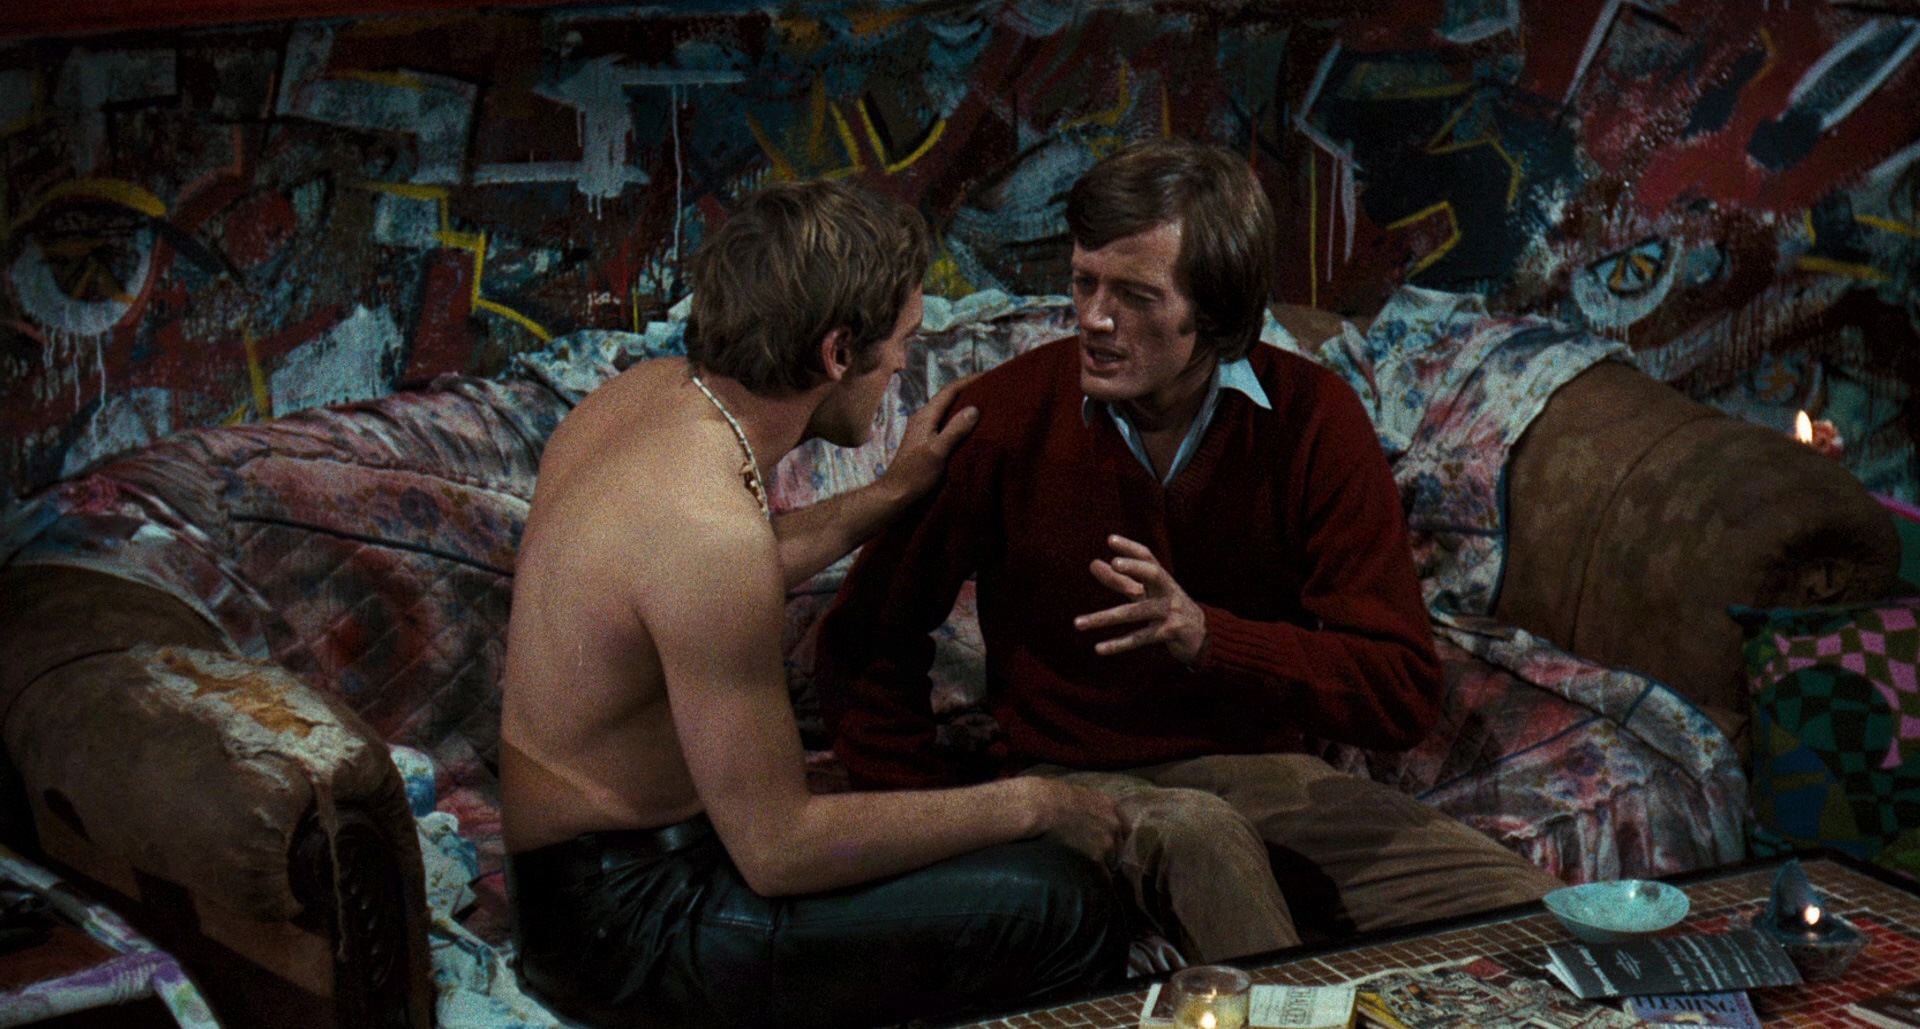 (l to r) Dennis Hopper and Peter Fonda take LSD in The Trip (1967)